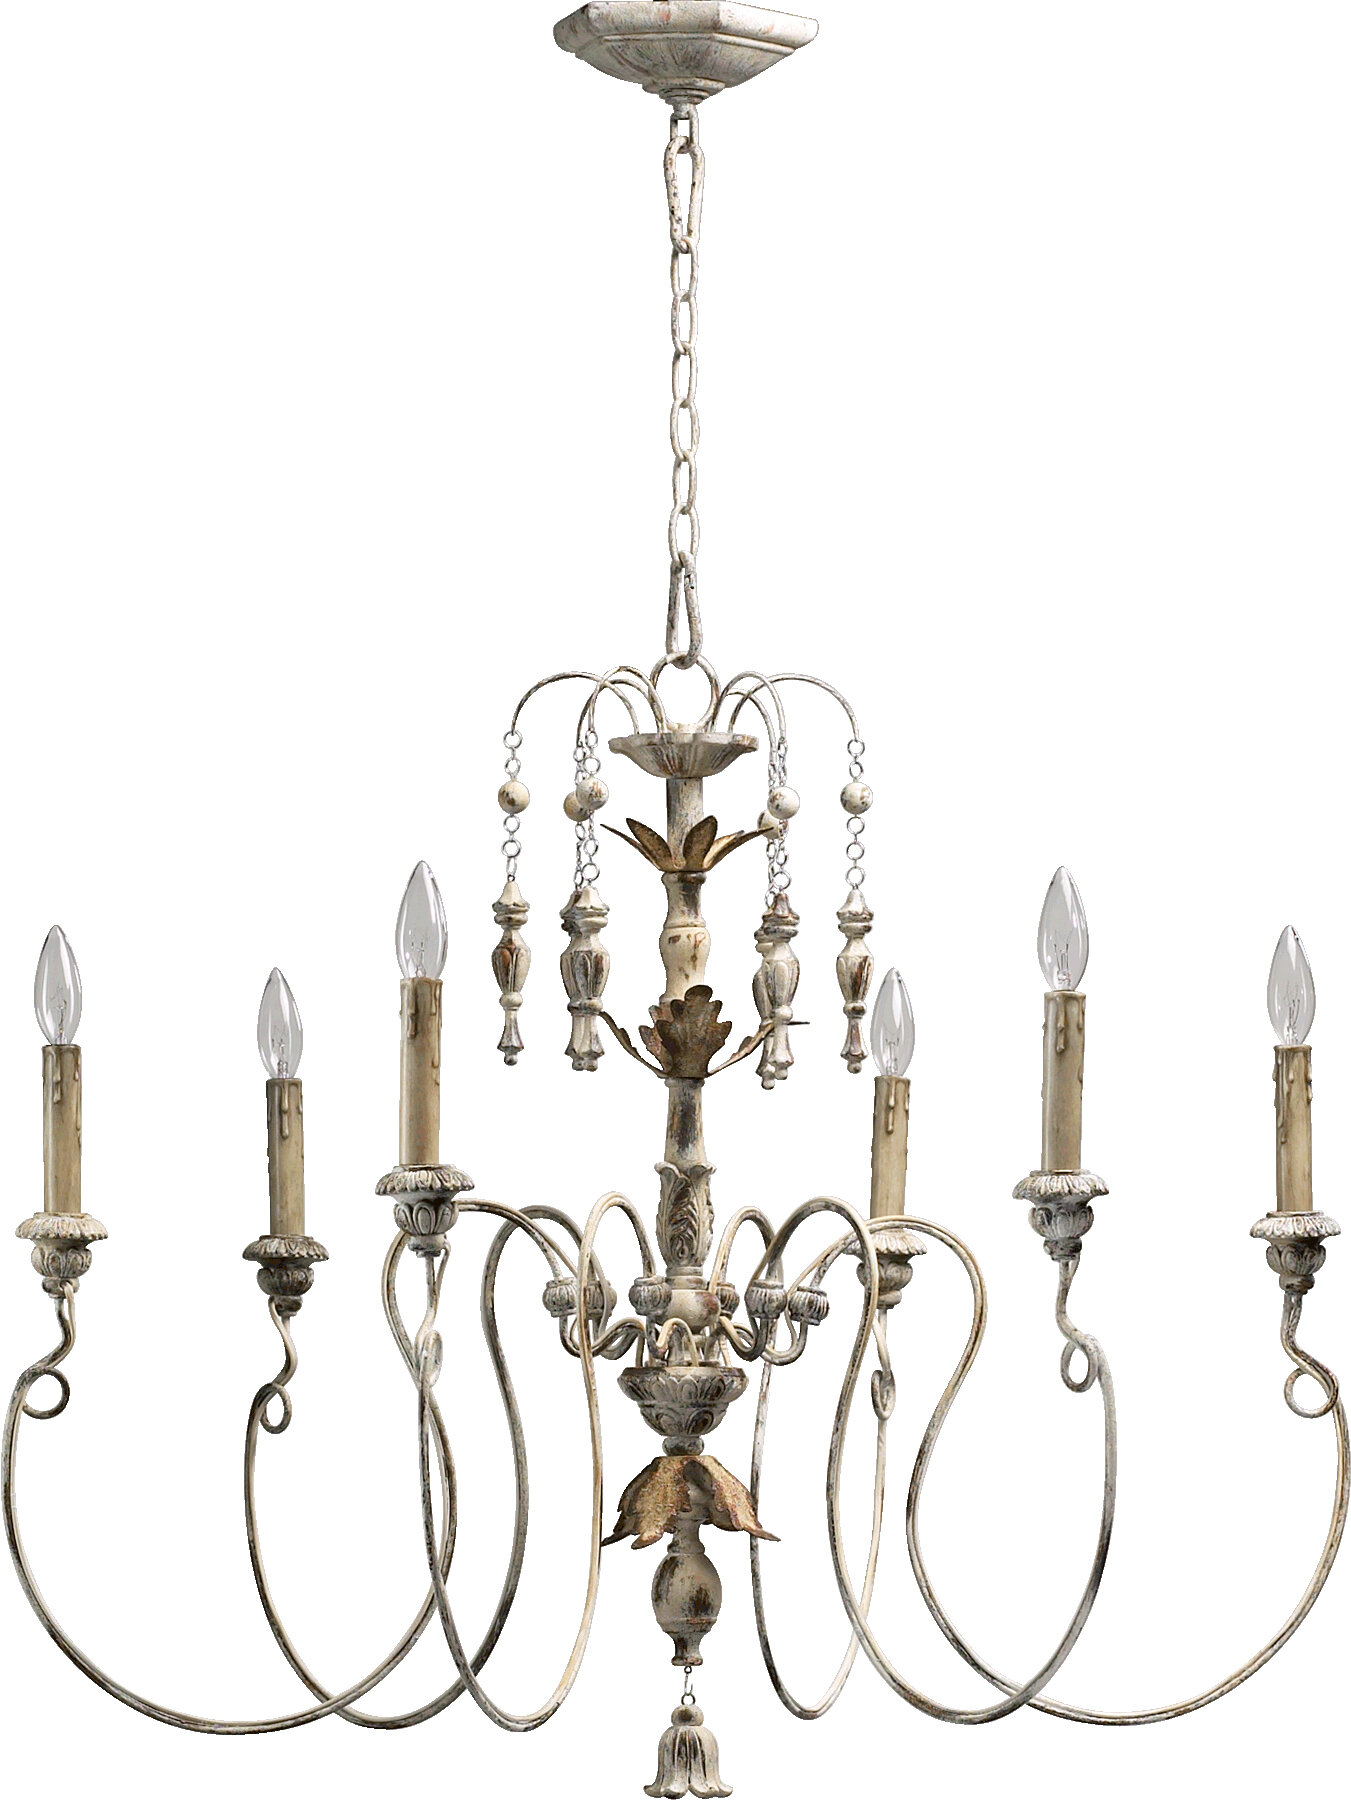 e Allium Way Paladino 6 Light Candle Style Chandelier & Reviews